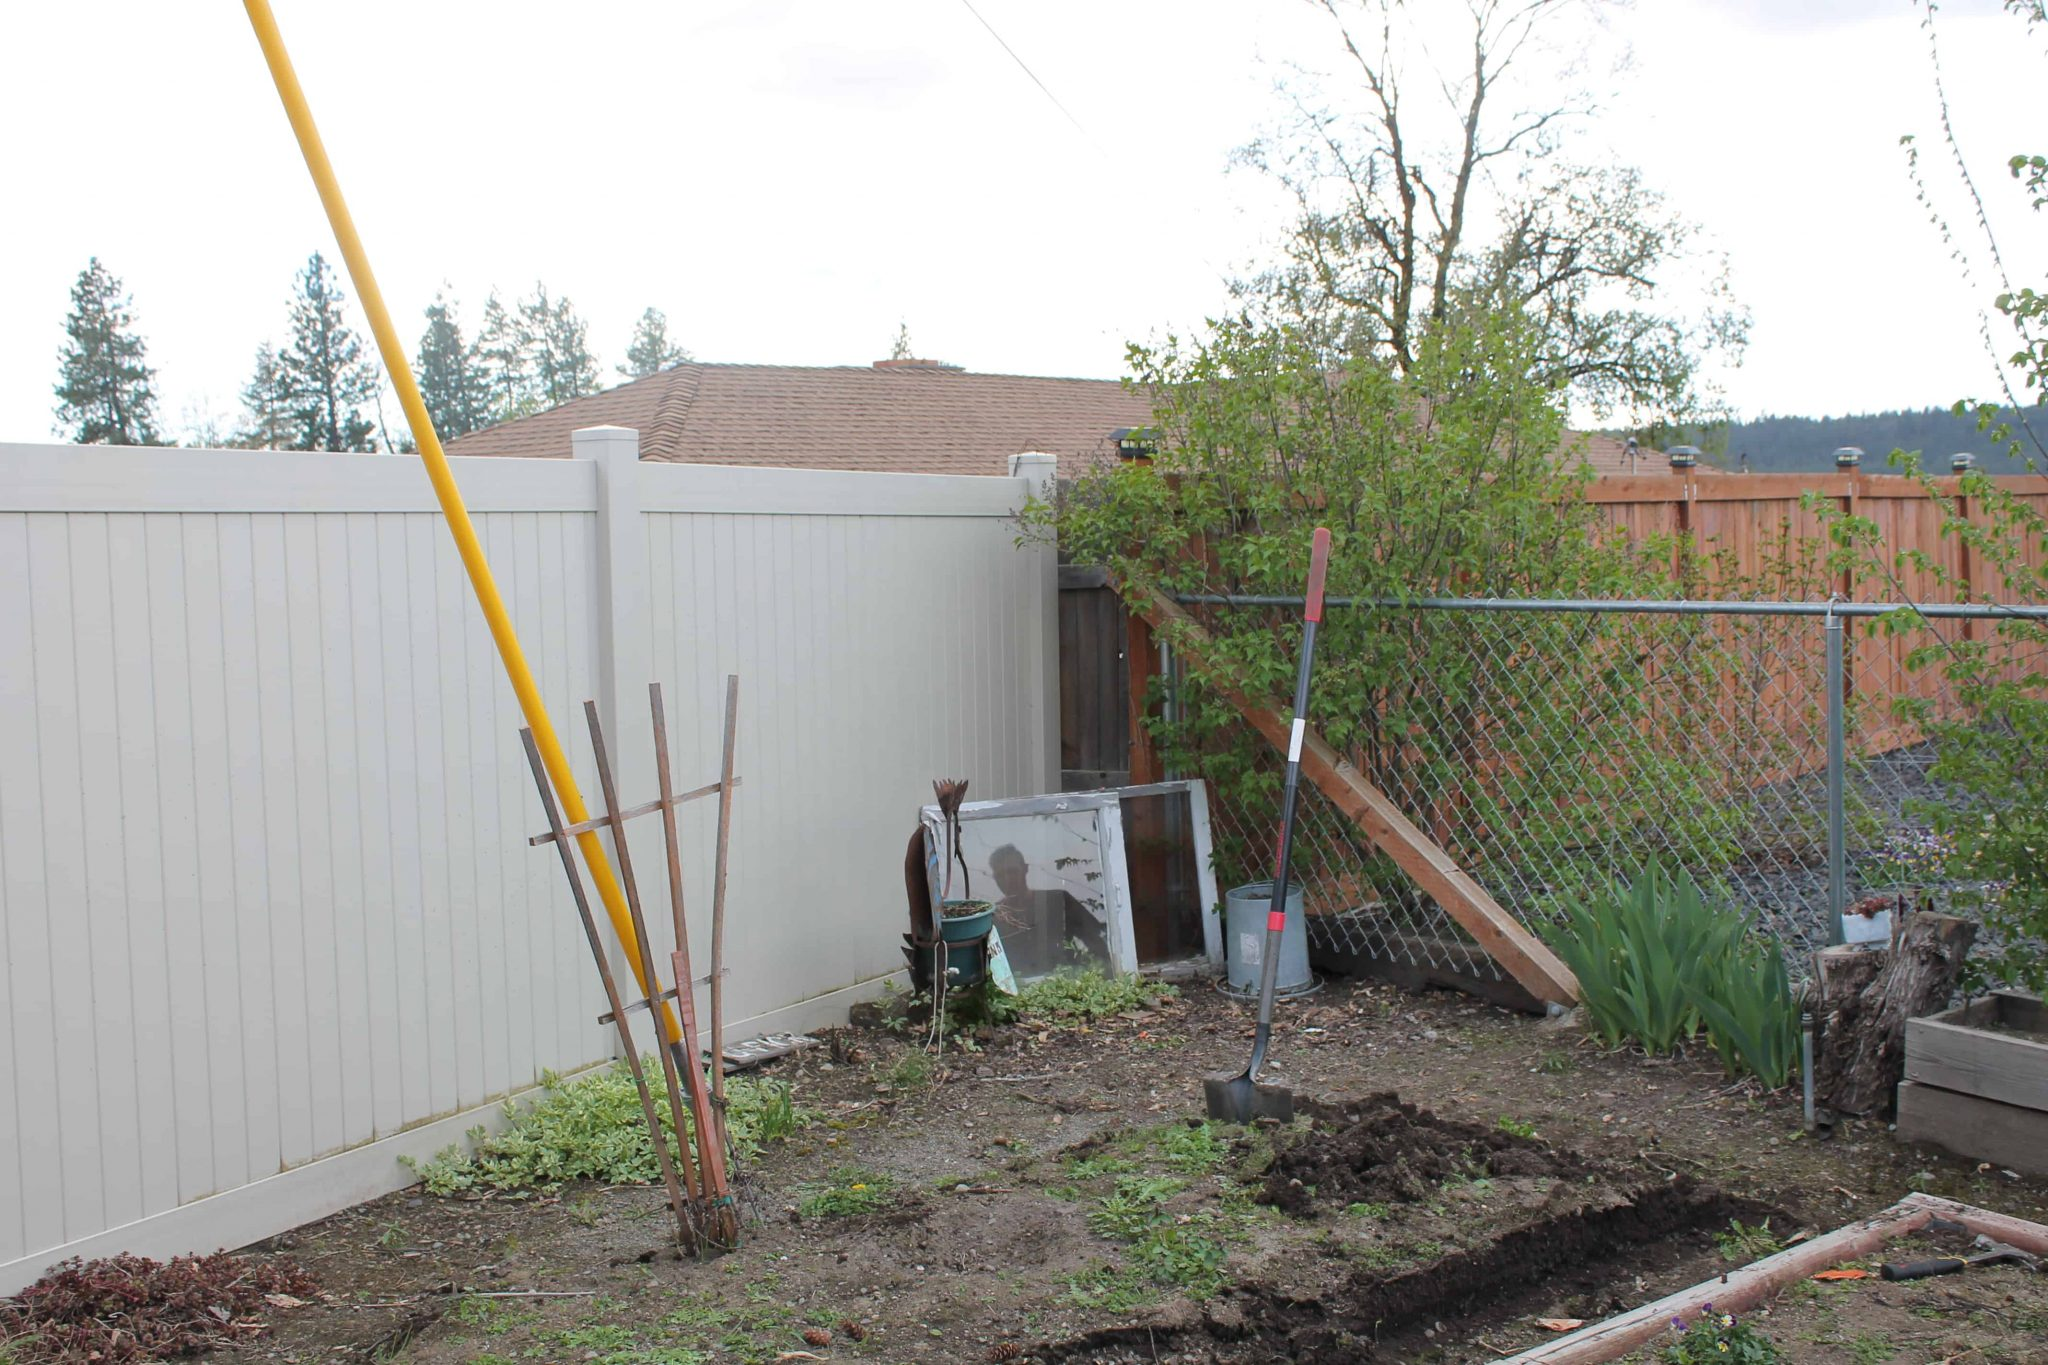 Garden update! Before and after: New chicken coop and garden layout